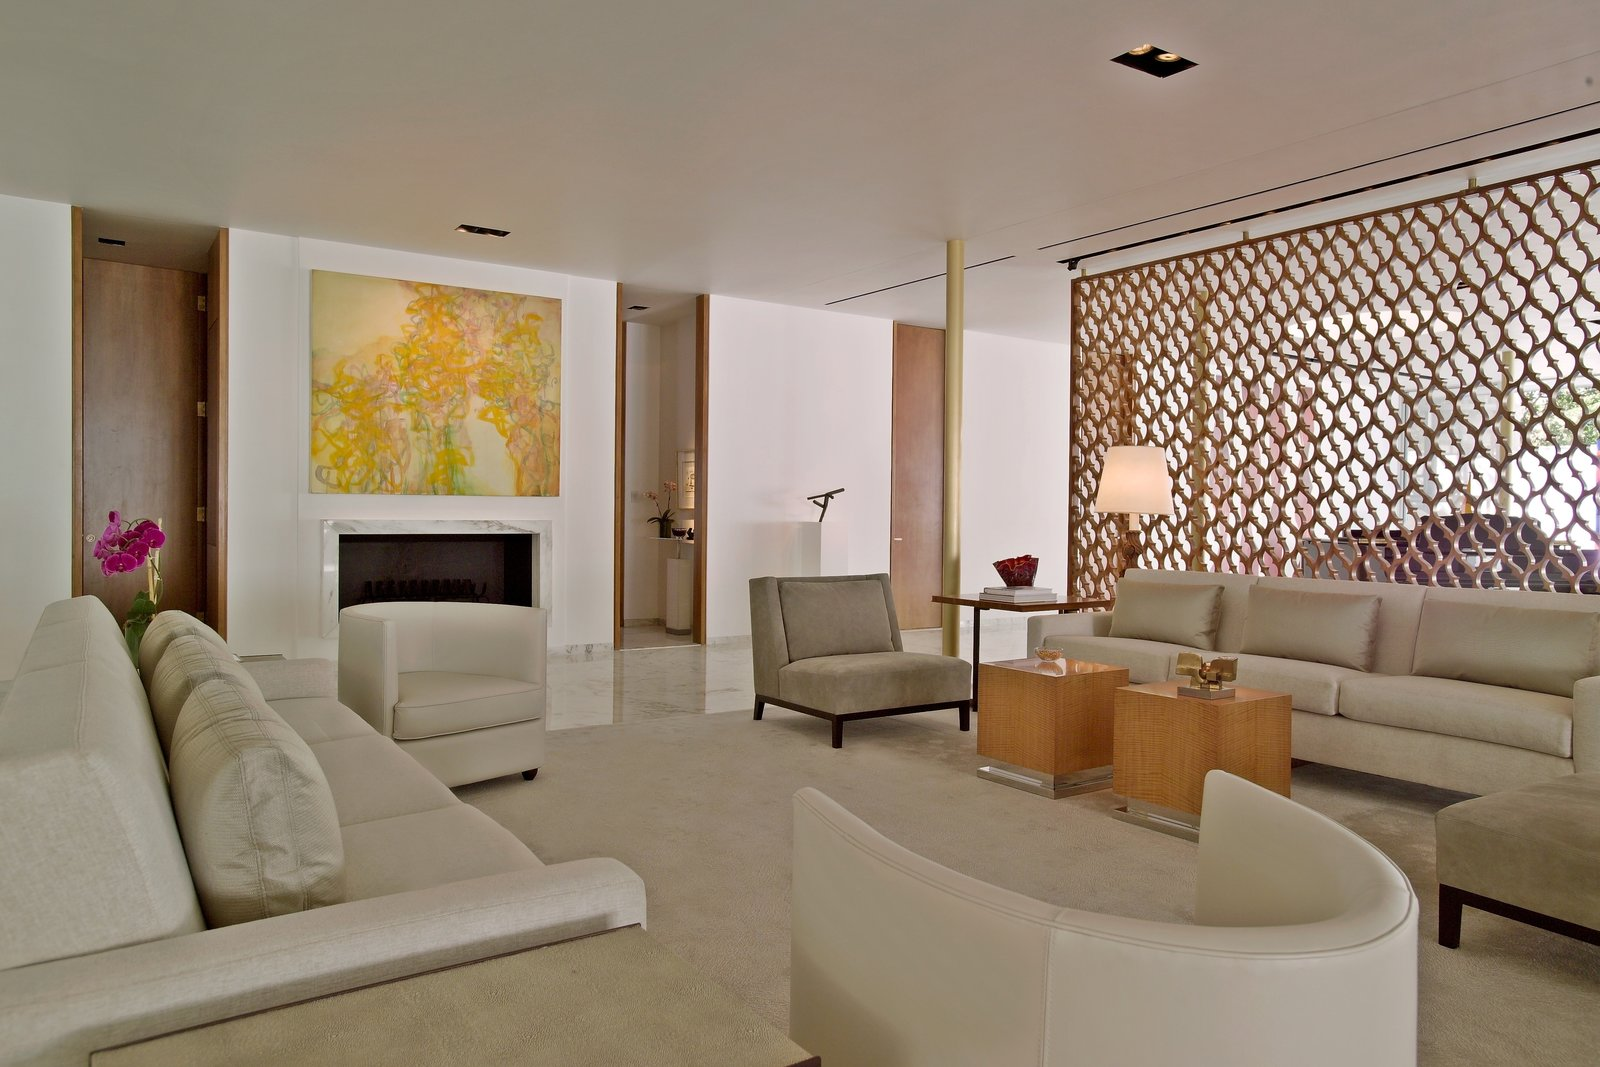 Living Room, Chair, Sofa, End Tables, Console Tables, Recessed Lighting, and Wood Burning Fireplace  Oak Court by buchanan architecture